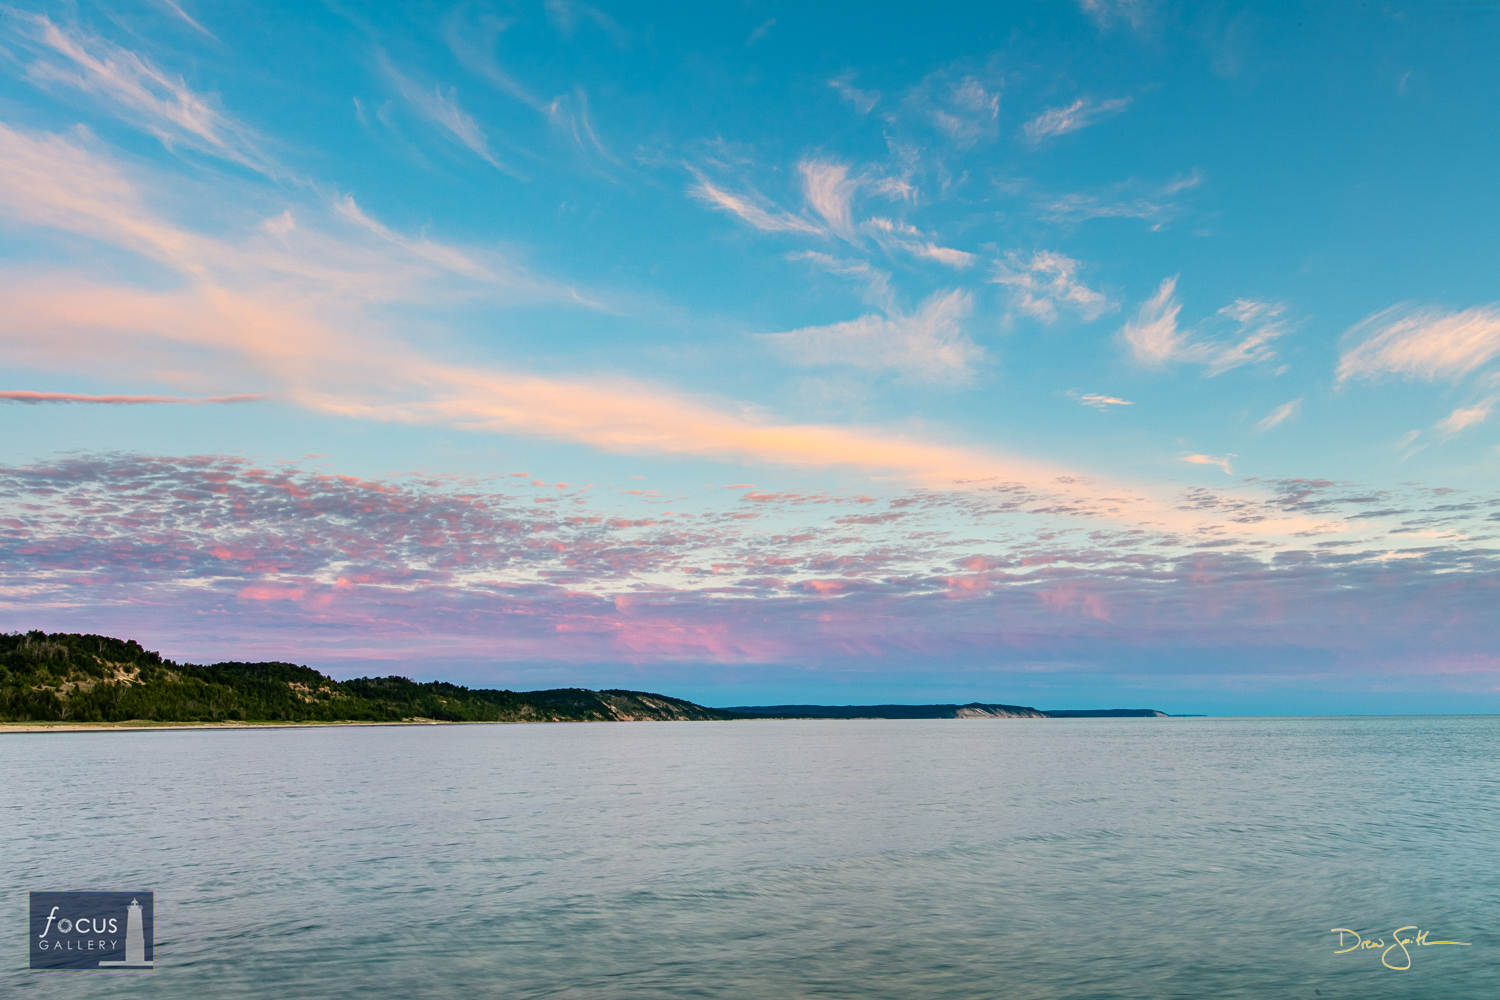 Photo © Drew Smith Layers of clouds glow with the last colors of the sunset over the Elberta, Green Point and Arcadia dunes...